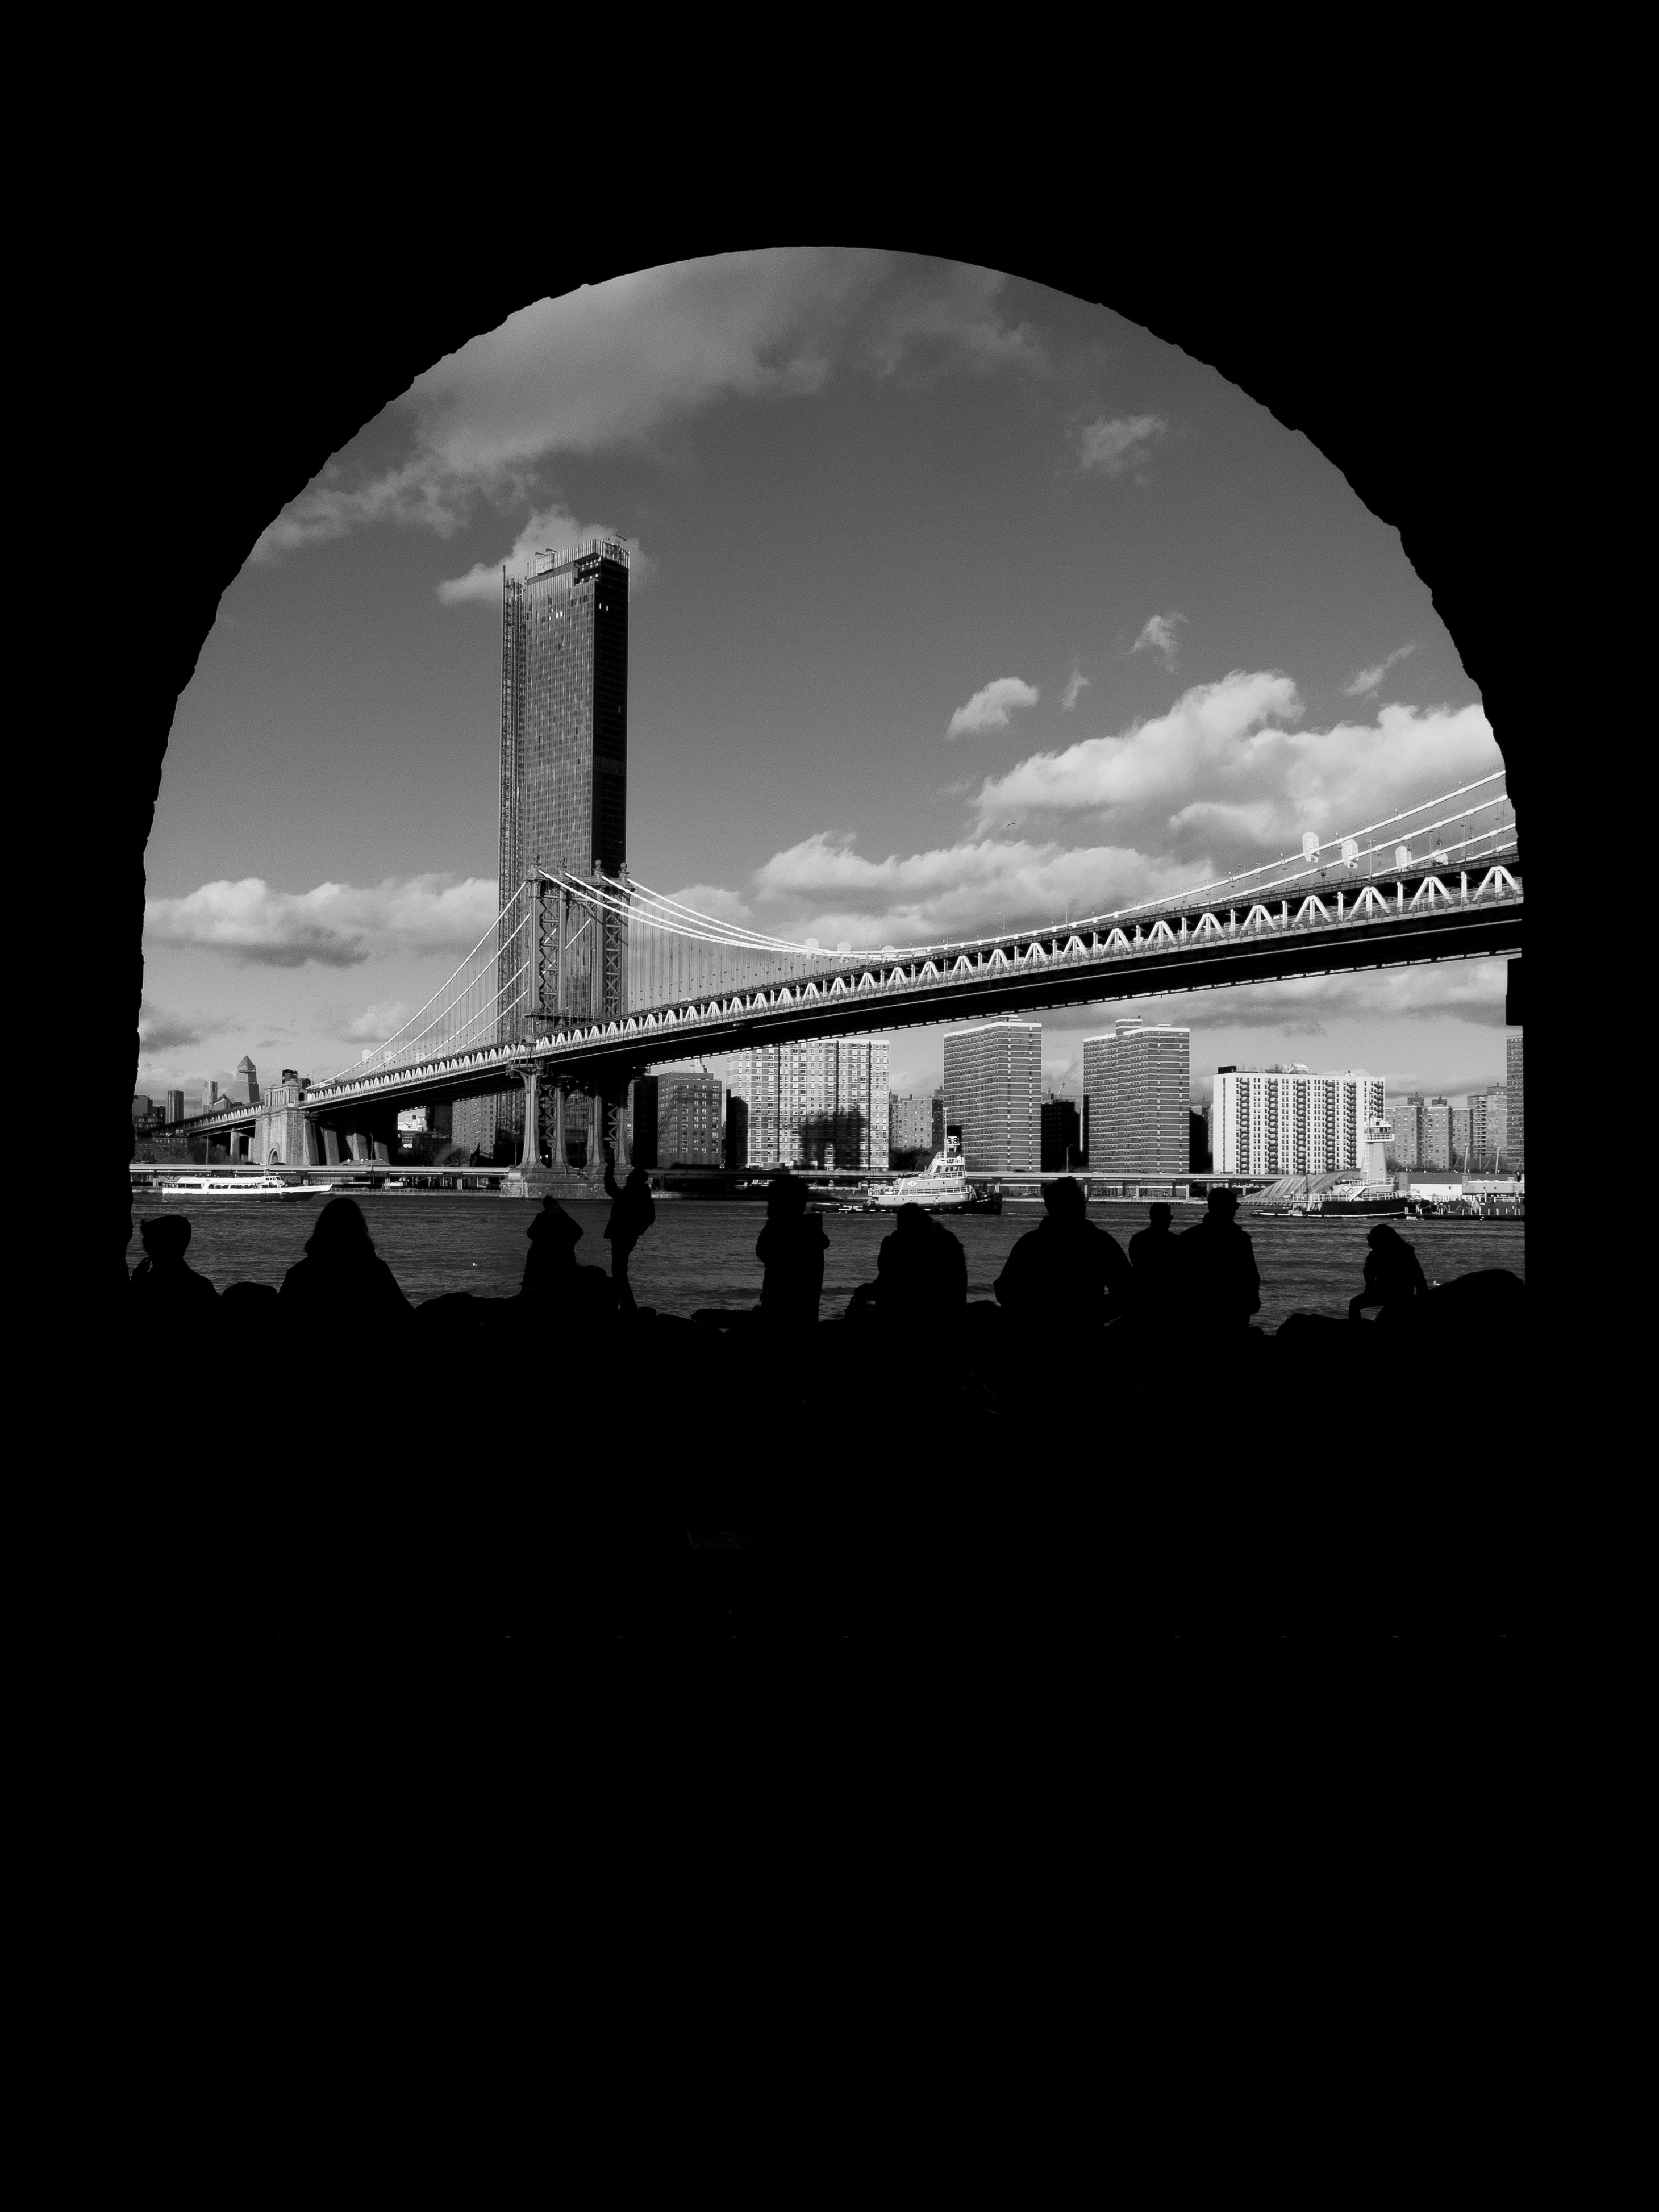 grayscale photo of a city